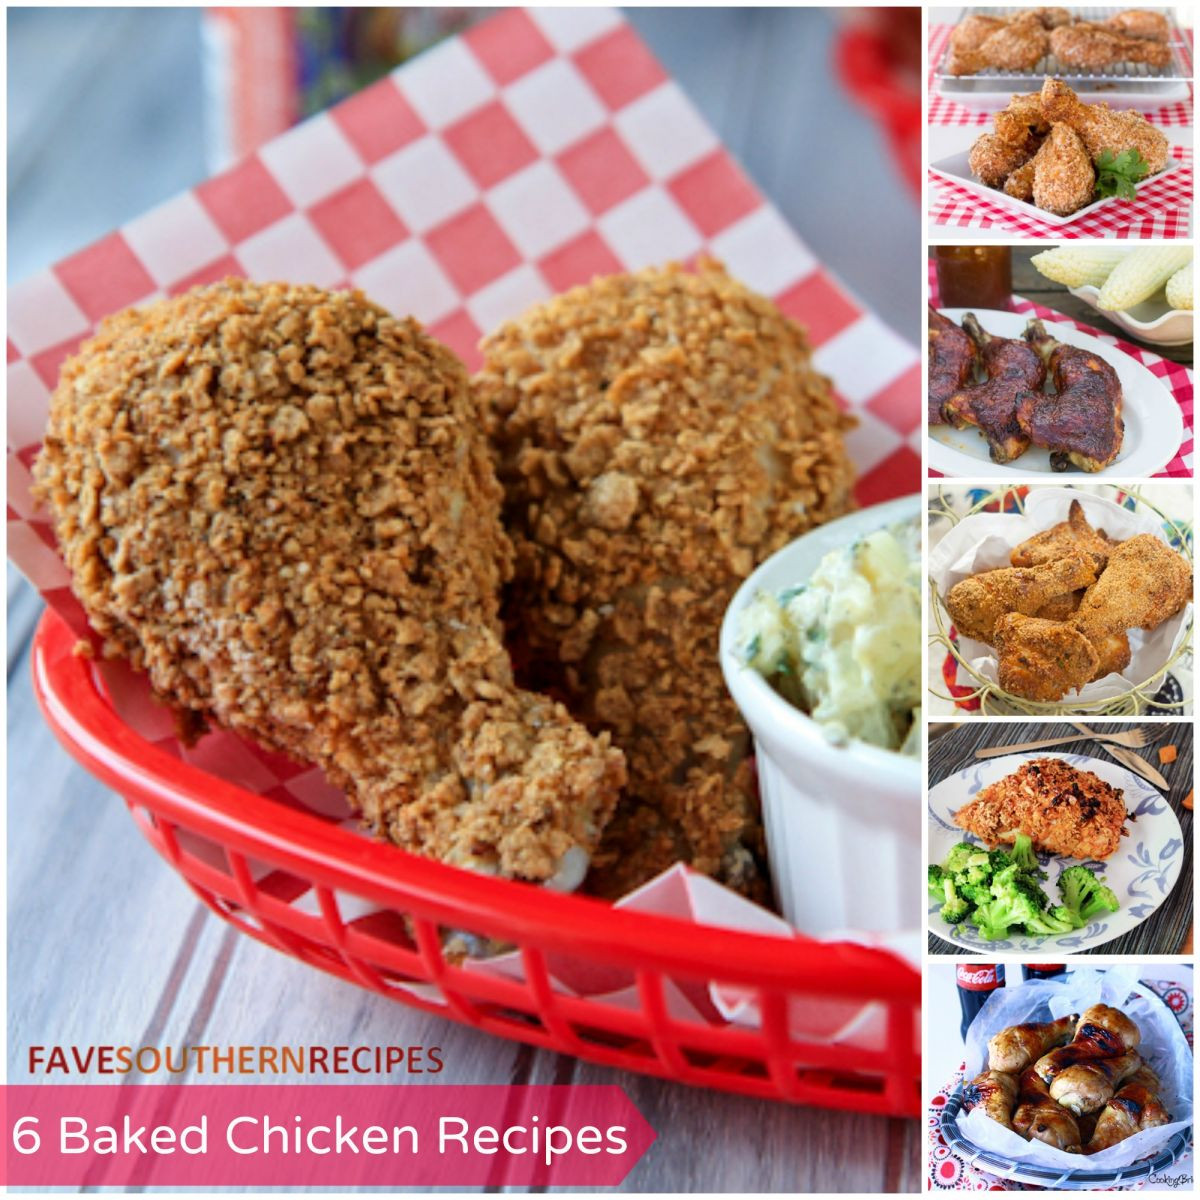 Healthy Dinner Ideas With Chicken  Healthy Meal Ideas 6 Baked Chicken Recipes